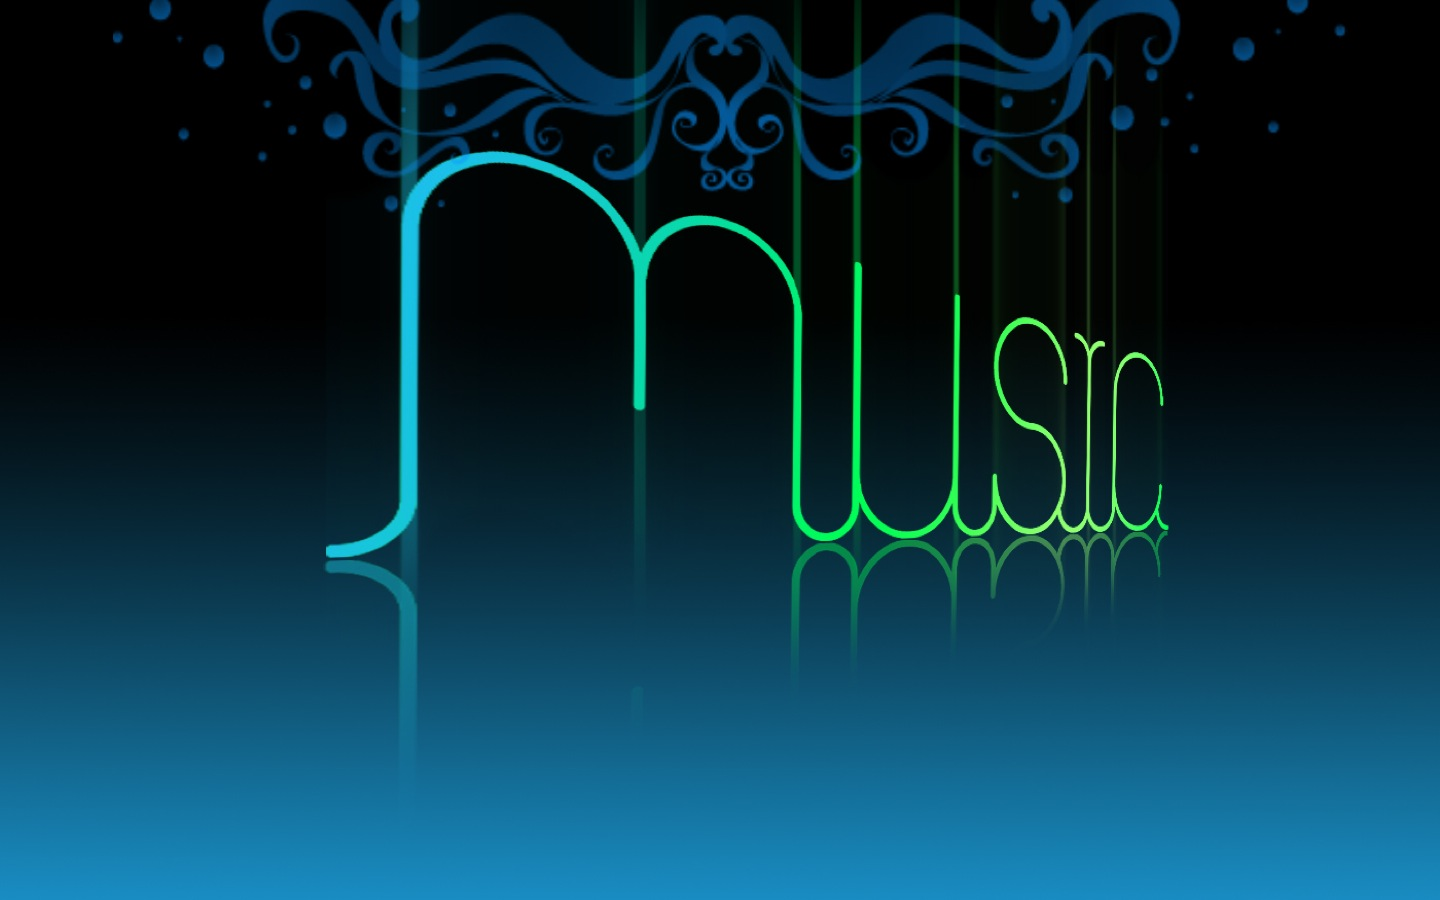 Music Hd Pictures